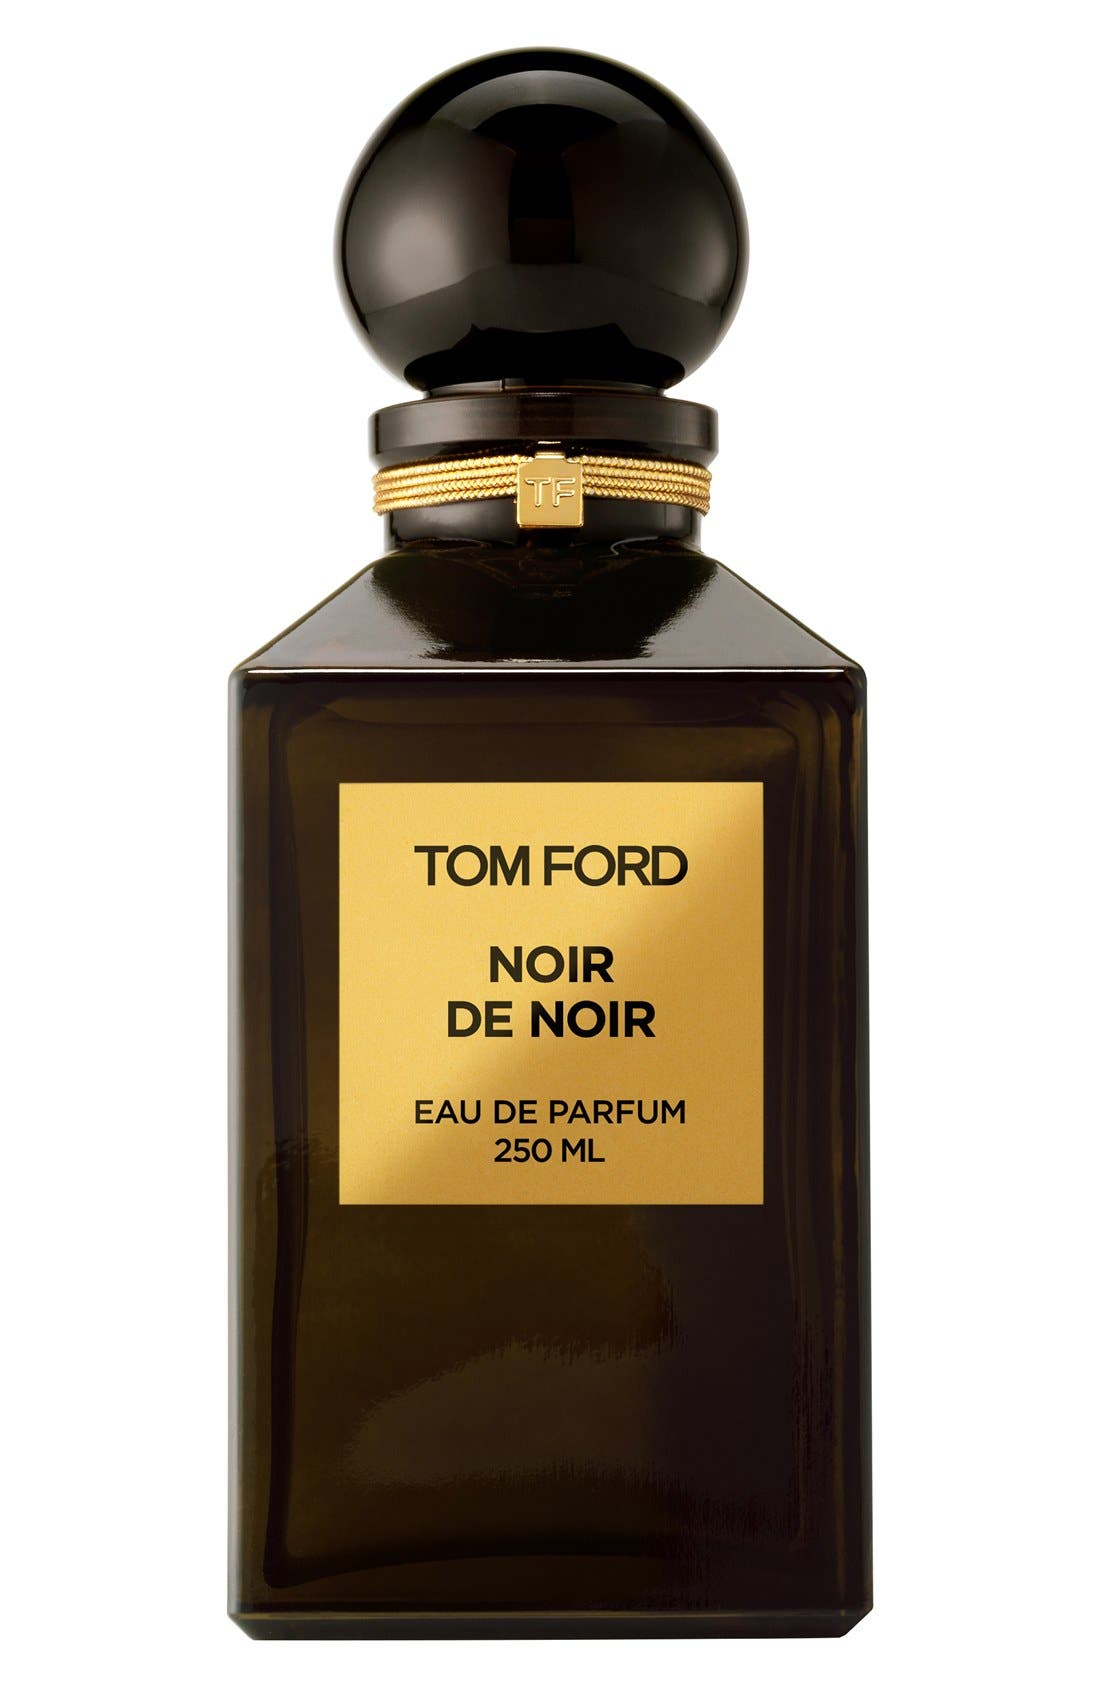 Tom Ford Private Blend Noir de Noir Eau de Parfum Decanter